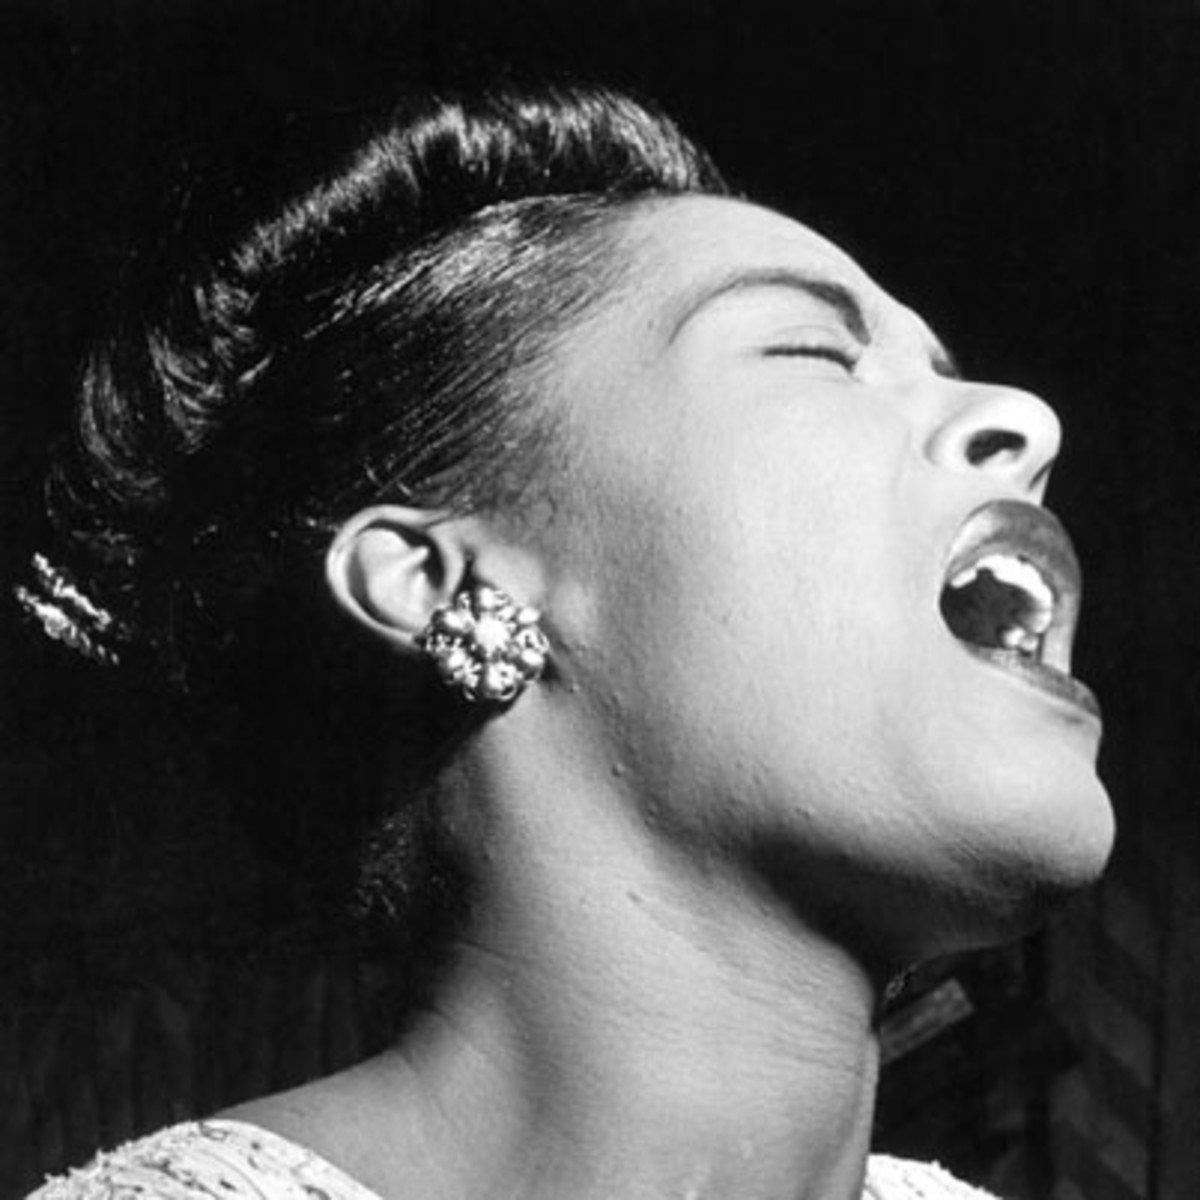 A photo of Billie Holiday performing. She was renowned for her ability to manipulate a microphone in order to be able to purr into it quietly or sing at very high volumes. Her style of working the microphone became the standard as others such as Frank Sin